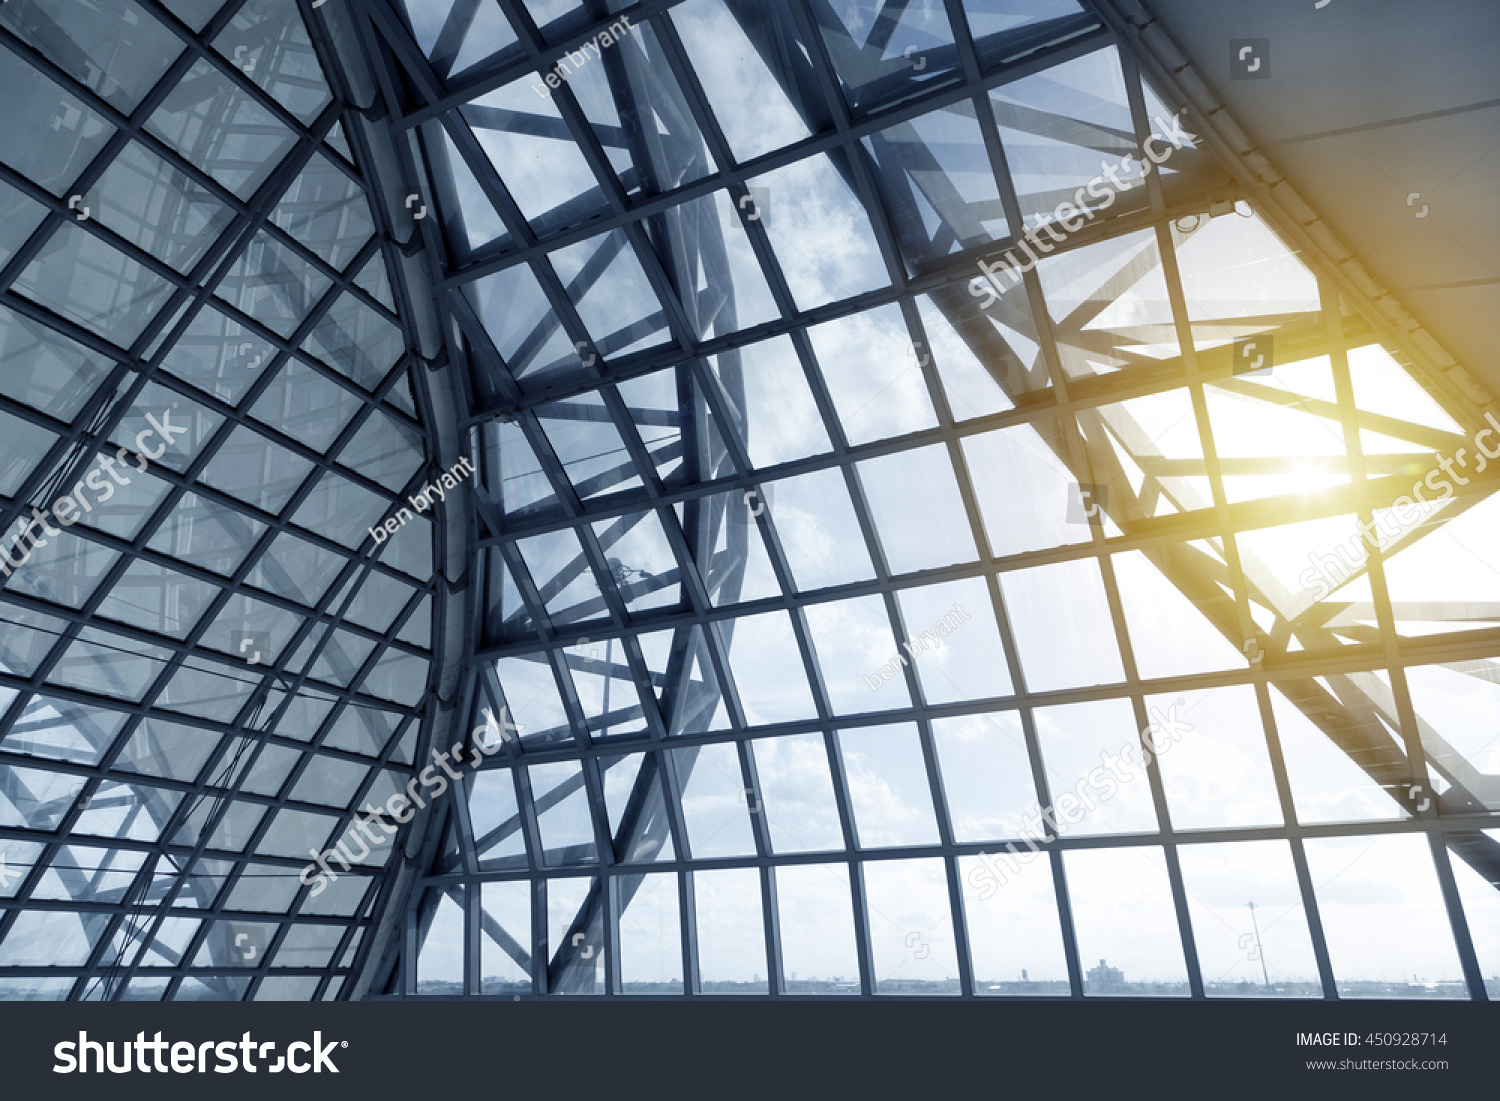 Skylight Window Abstract Architectural Background